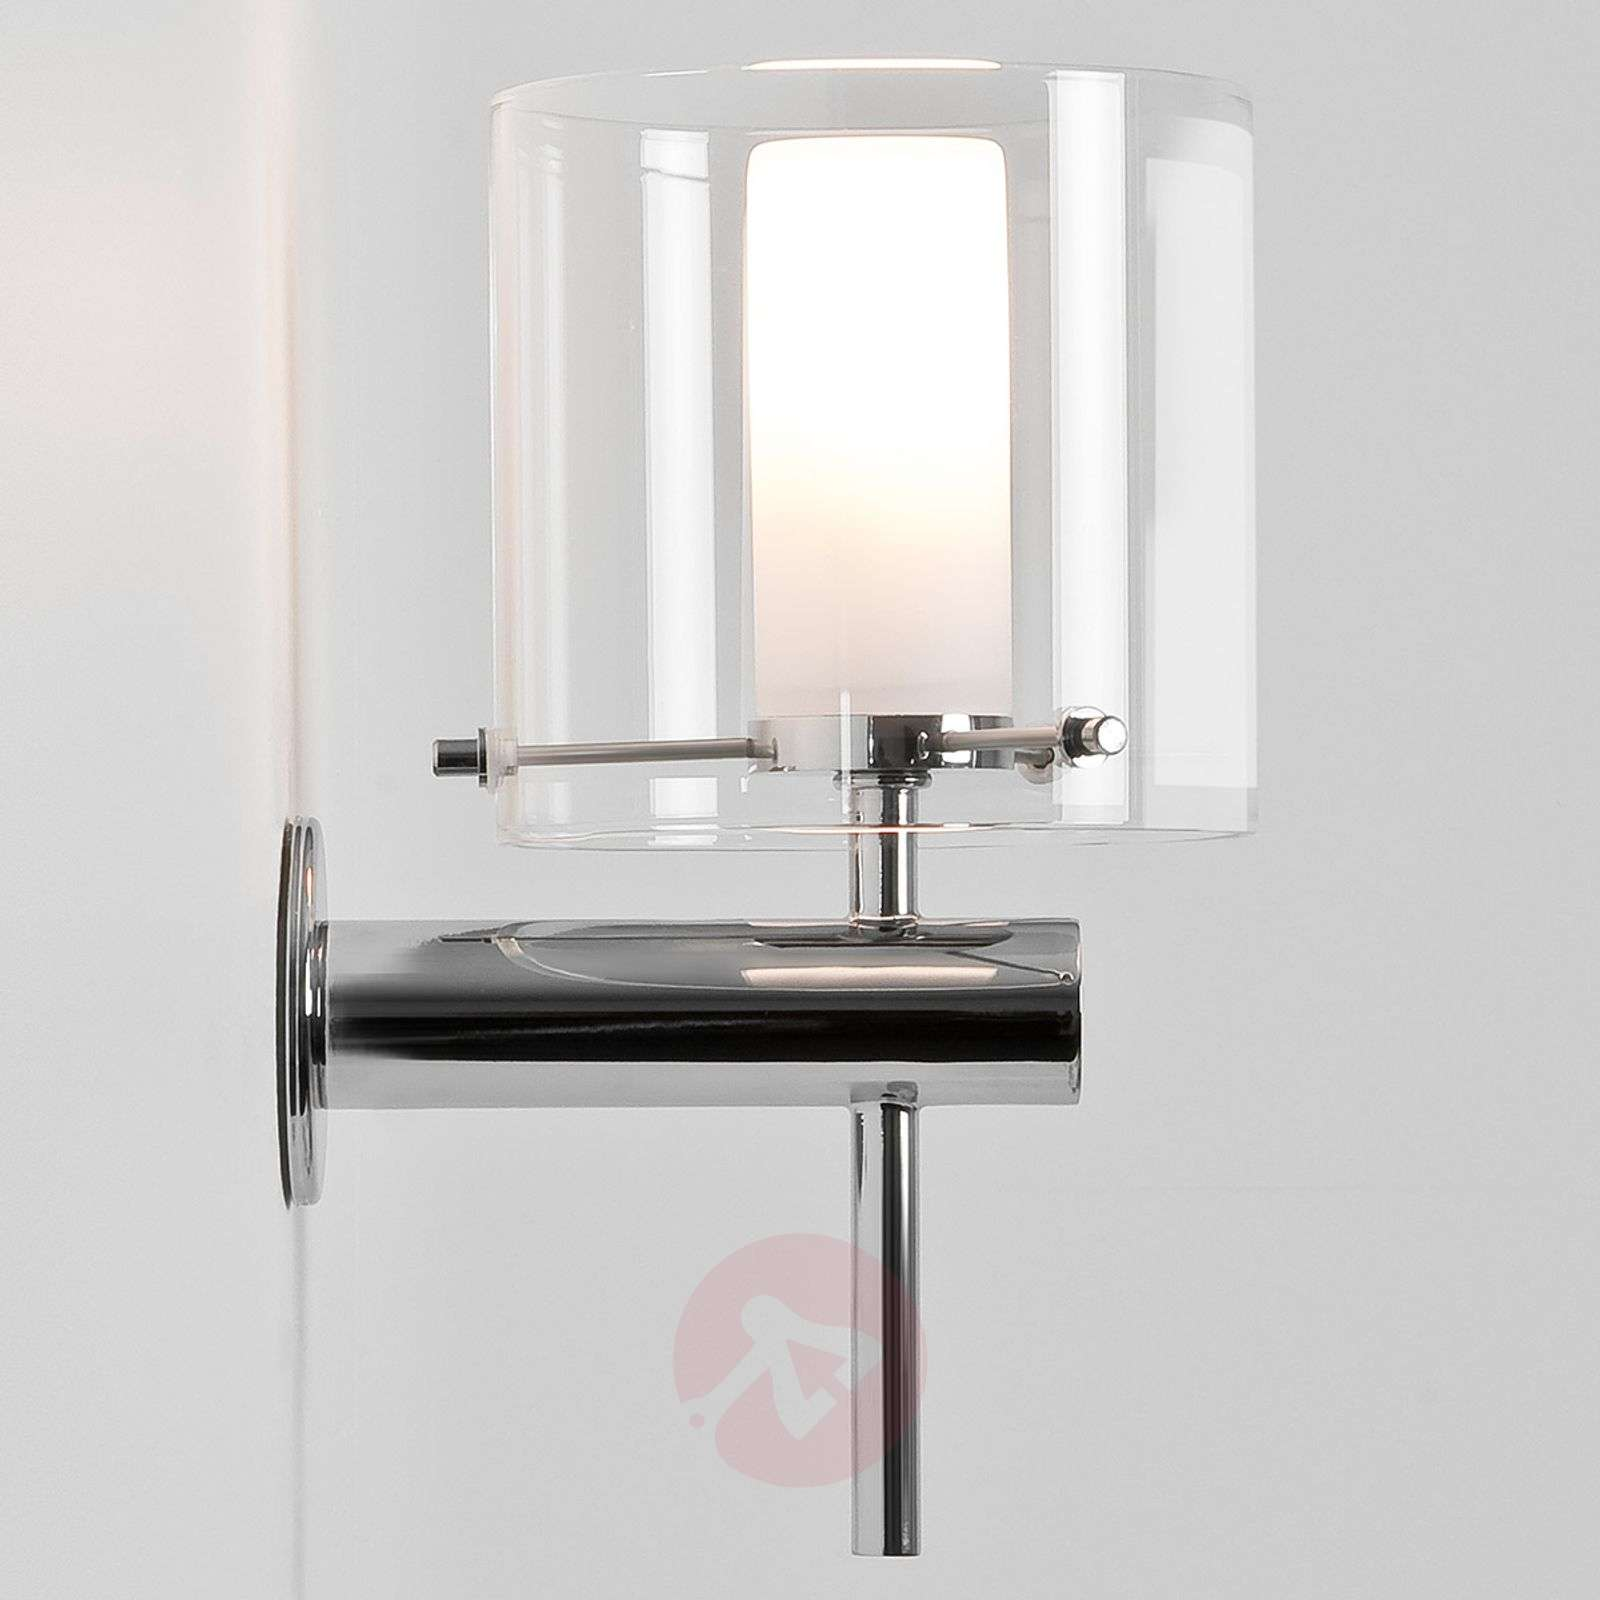 Arezzo Wall Light Elegant-1020017-02